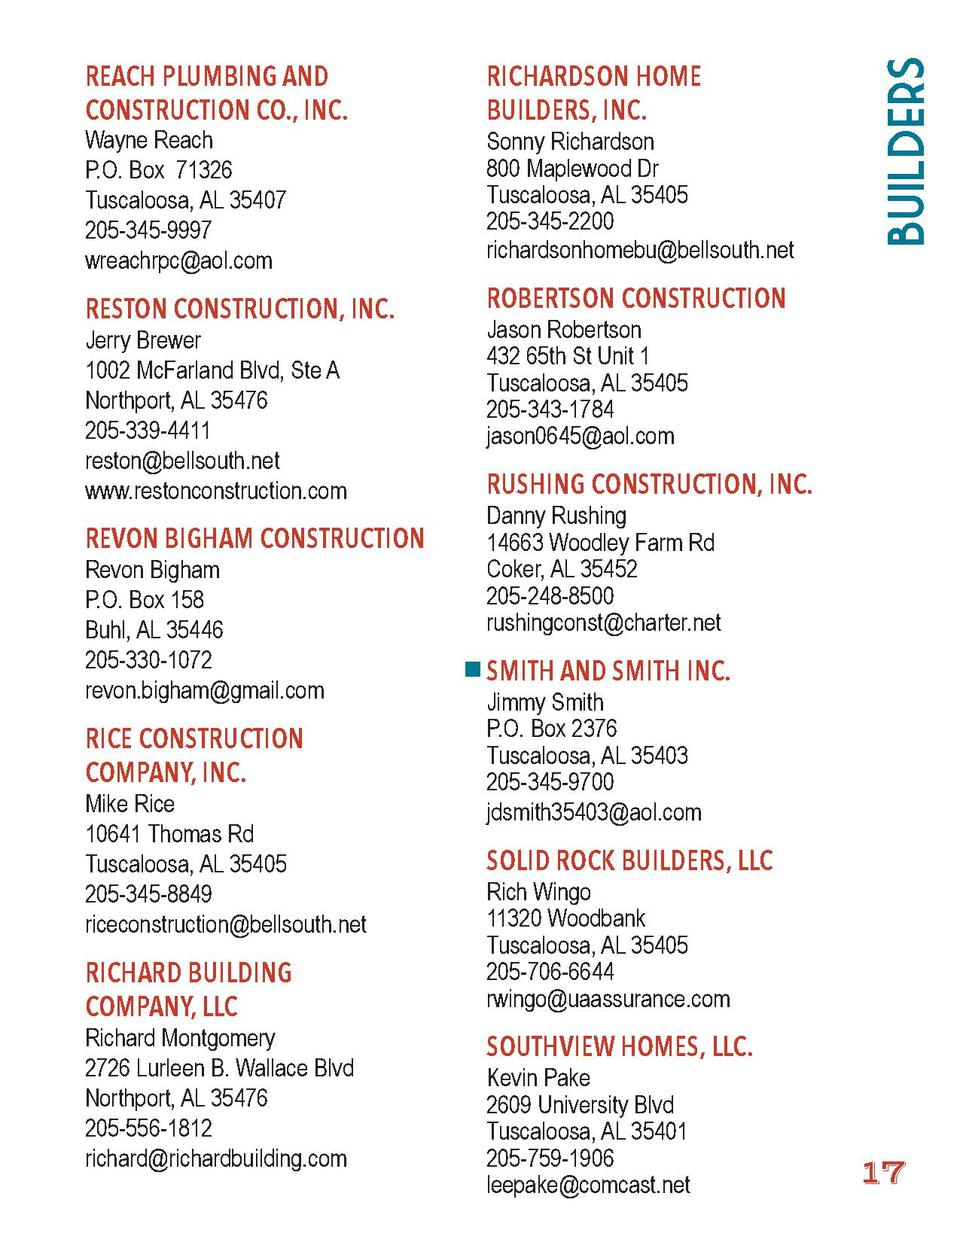 RICHARDSON HOME BUILDERS, INC.  RESTON CONSTRUCTION, INC.  Builders  REACH PLUMBING AND CONSTRUCTION CO., INC.  ROBERTSON ...